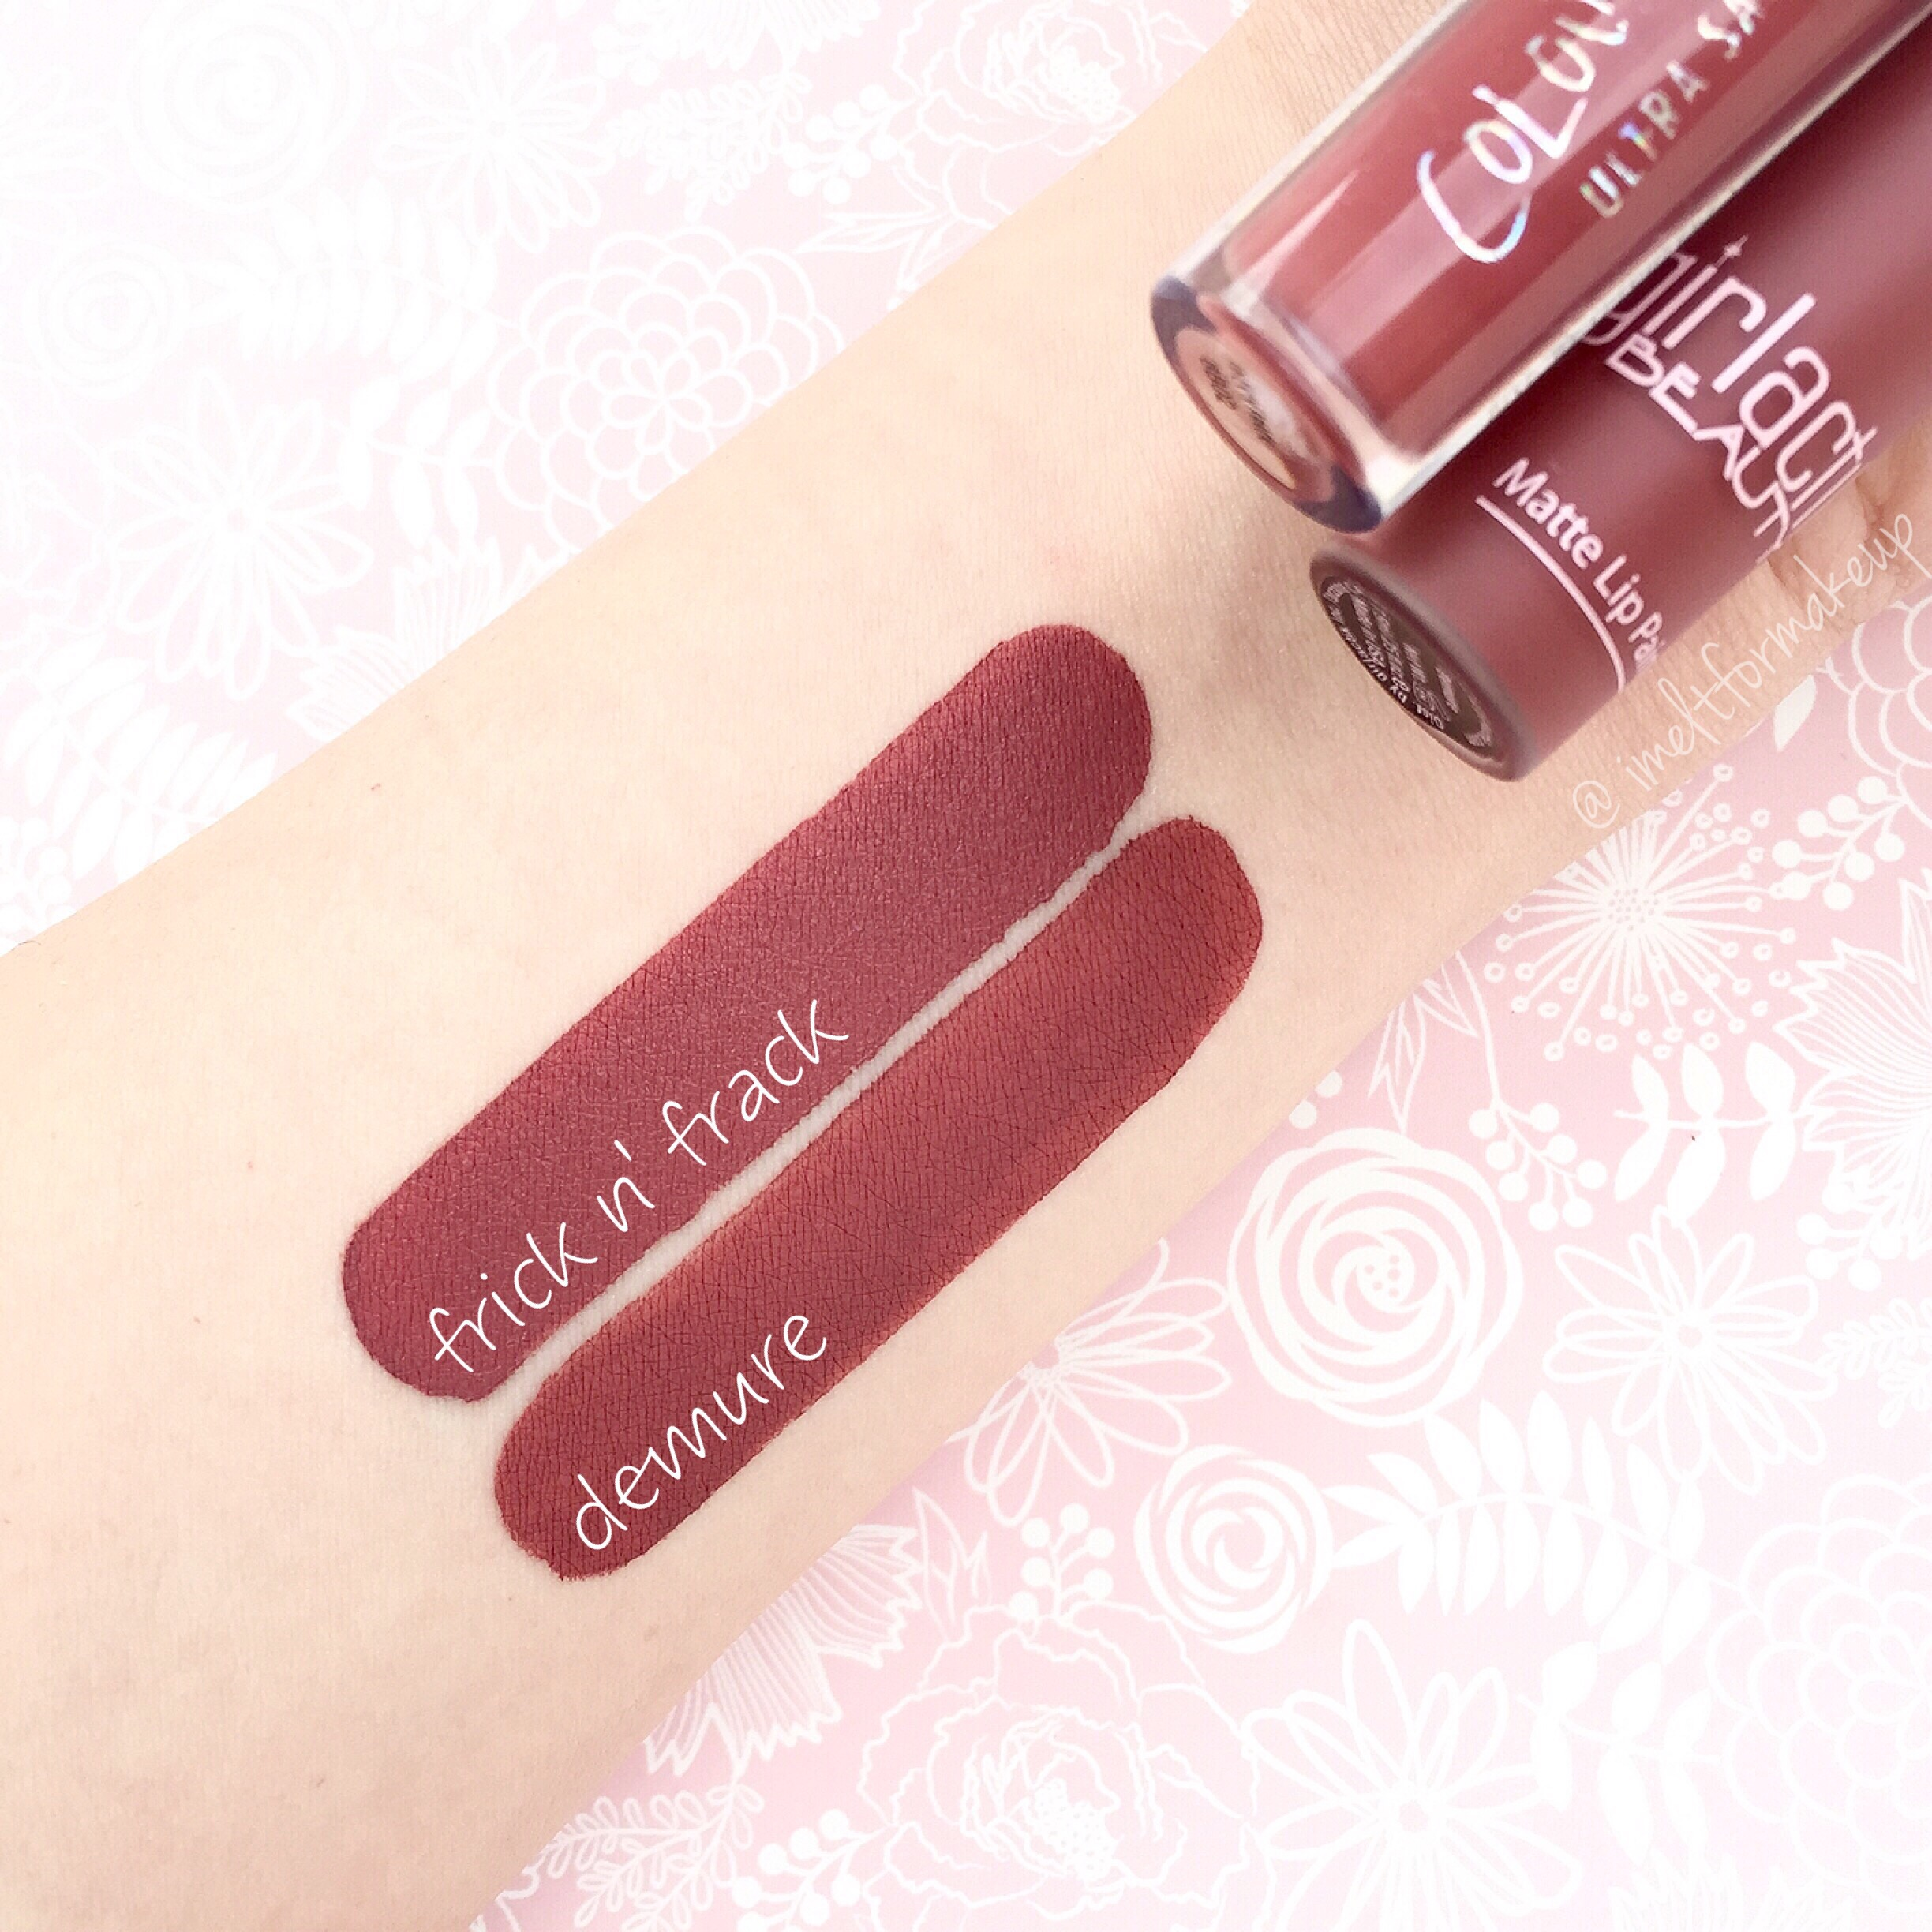 colourpop frick n frack  and girlactik demure